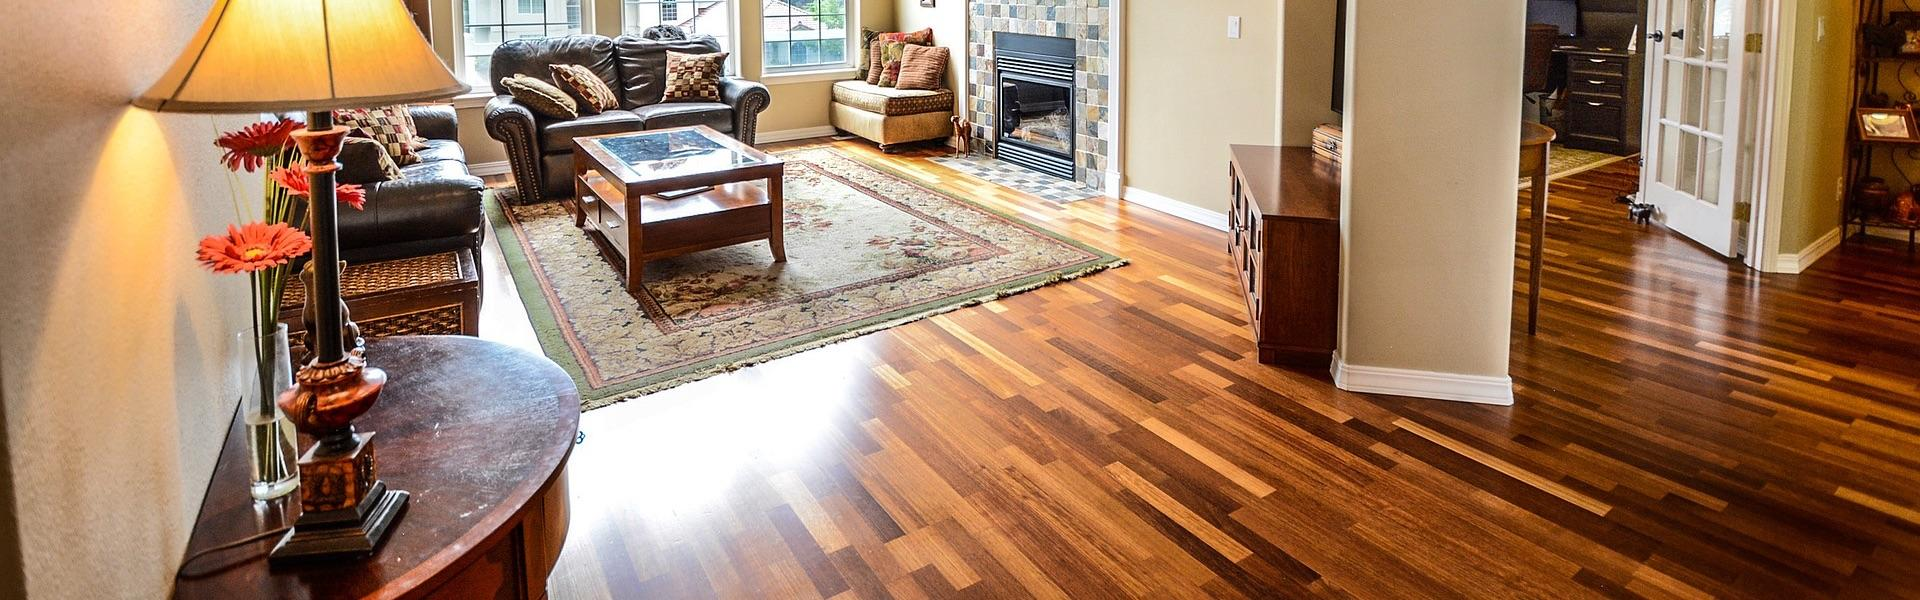 Wood flooring in modern home